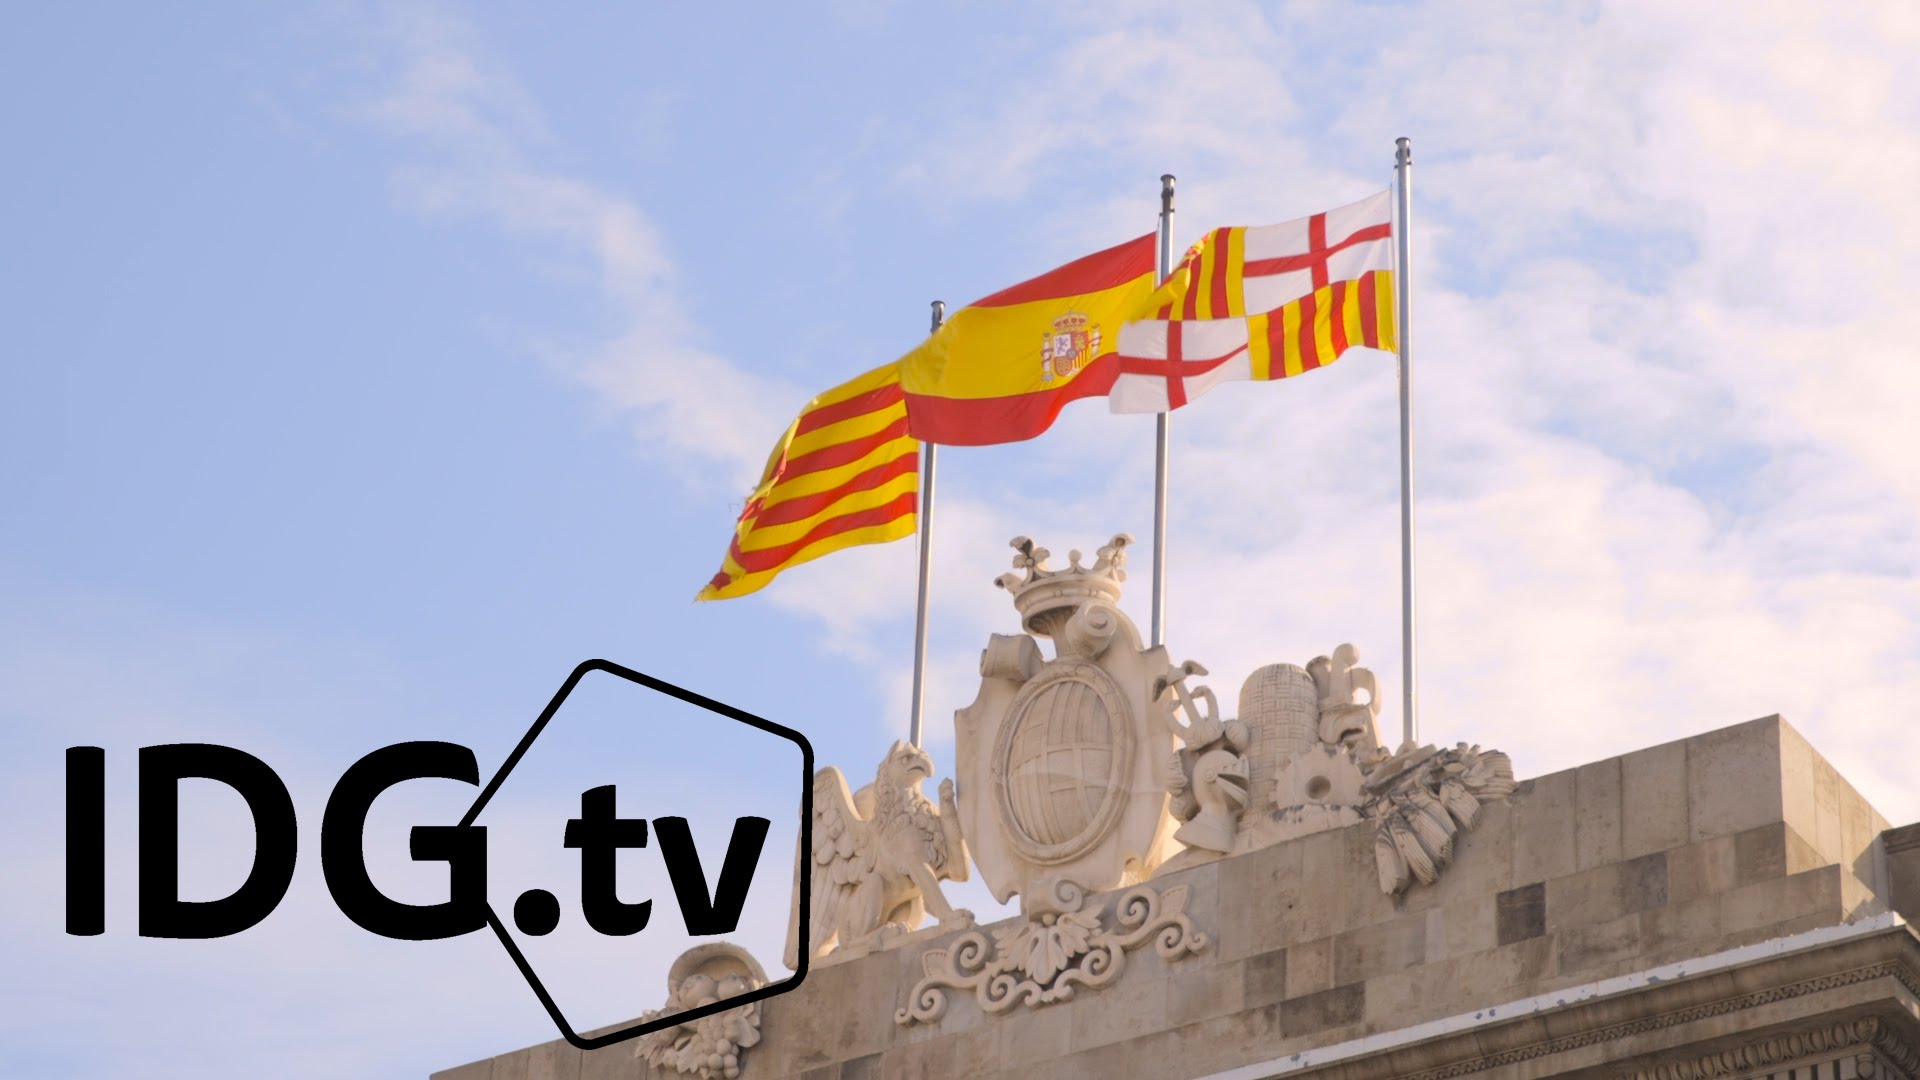 idg-tv-smart-cities-barcelona